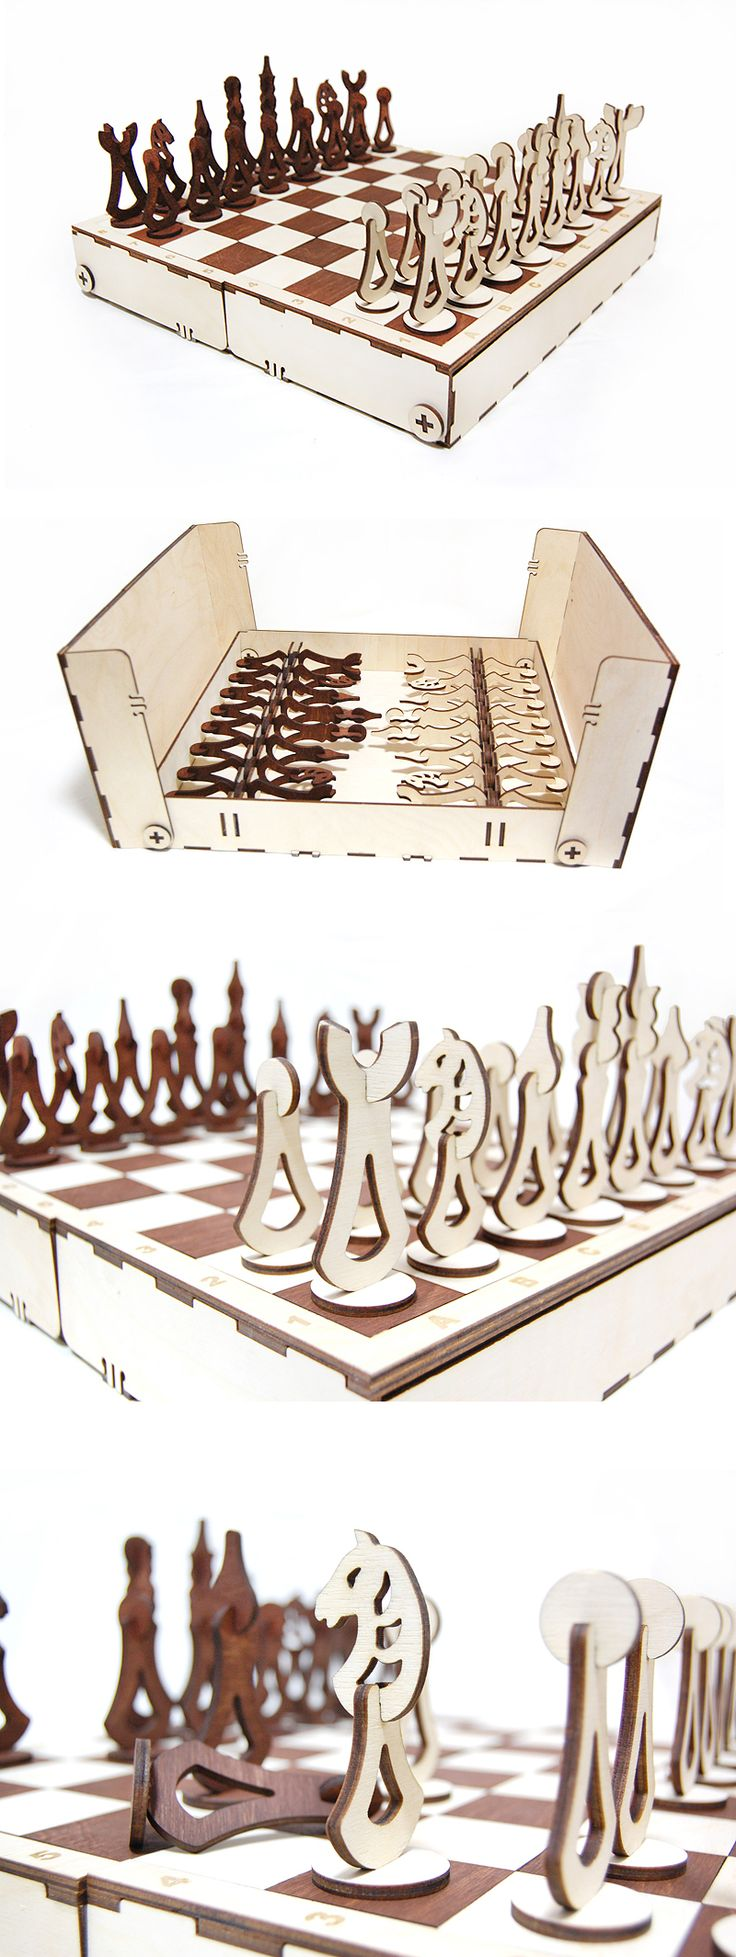 Design chess from plywood. Light figures - a birch tree, dark figures - American walnut. #WoodenGames #HomeDecor #PlywoodChess